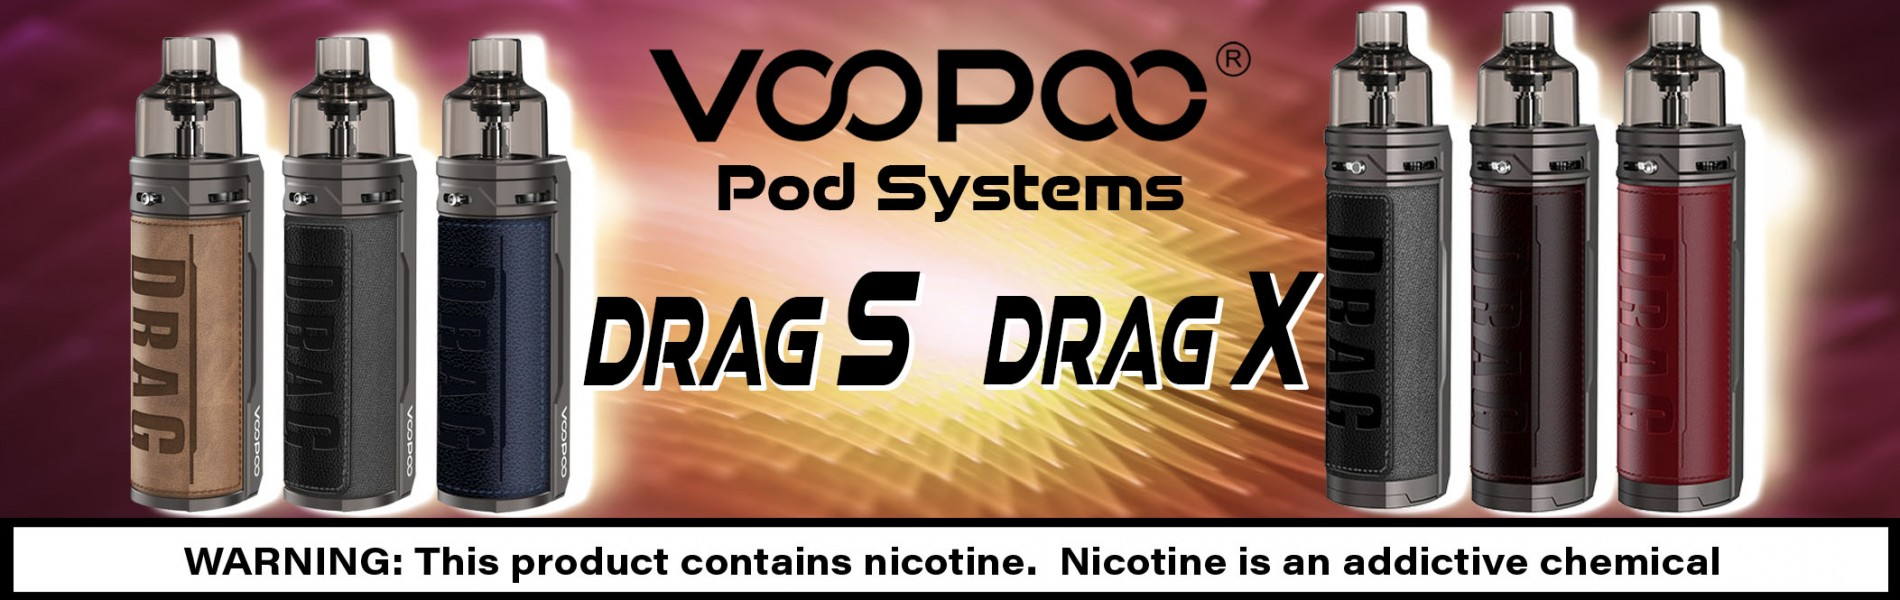 Voopoo Drag S, Voopoo Drag X Pod Systems